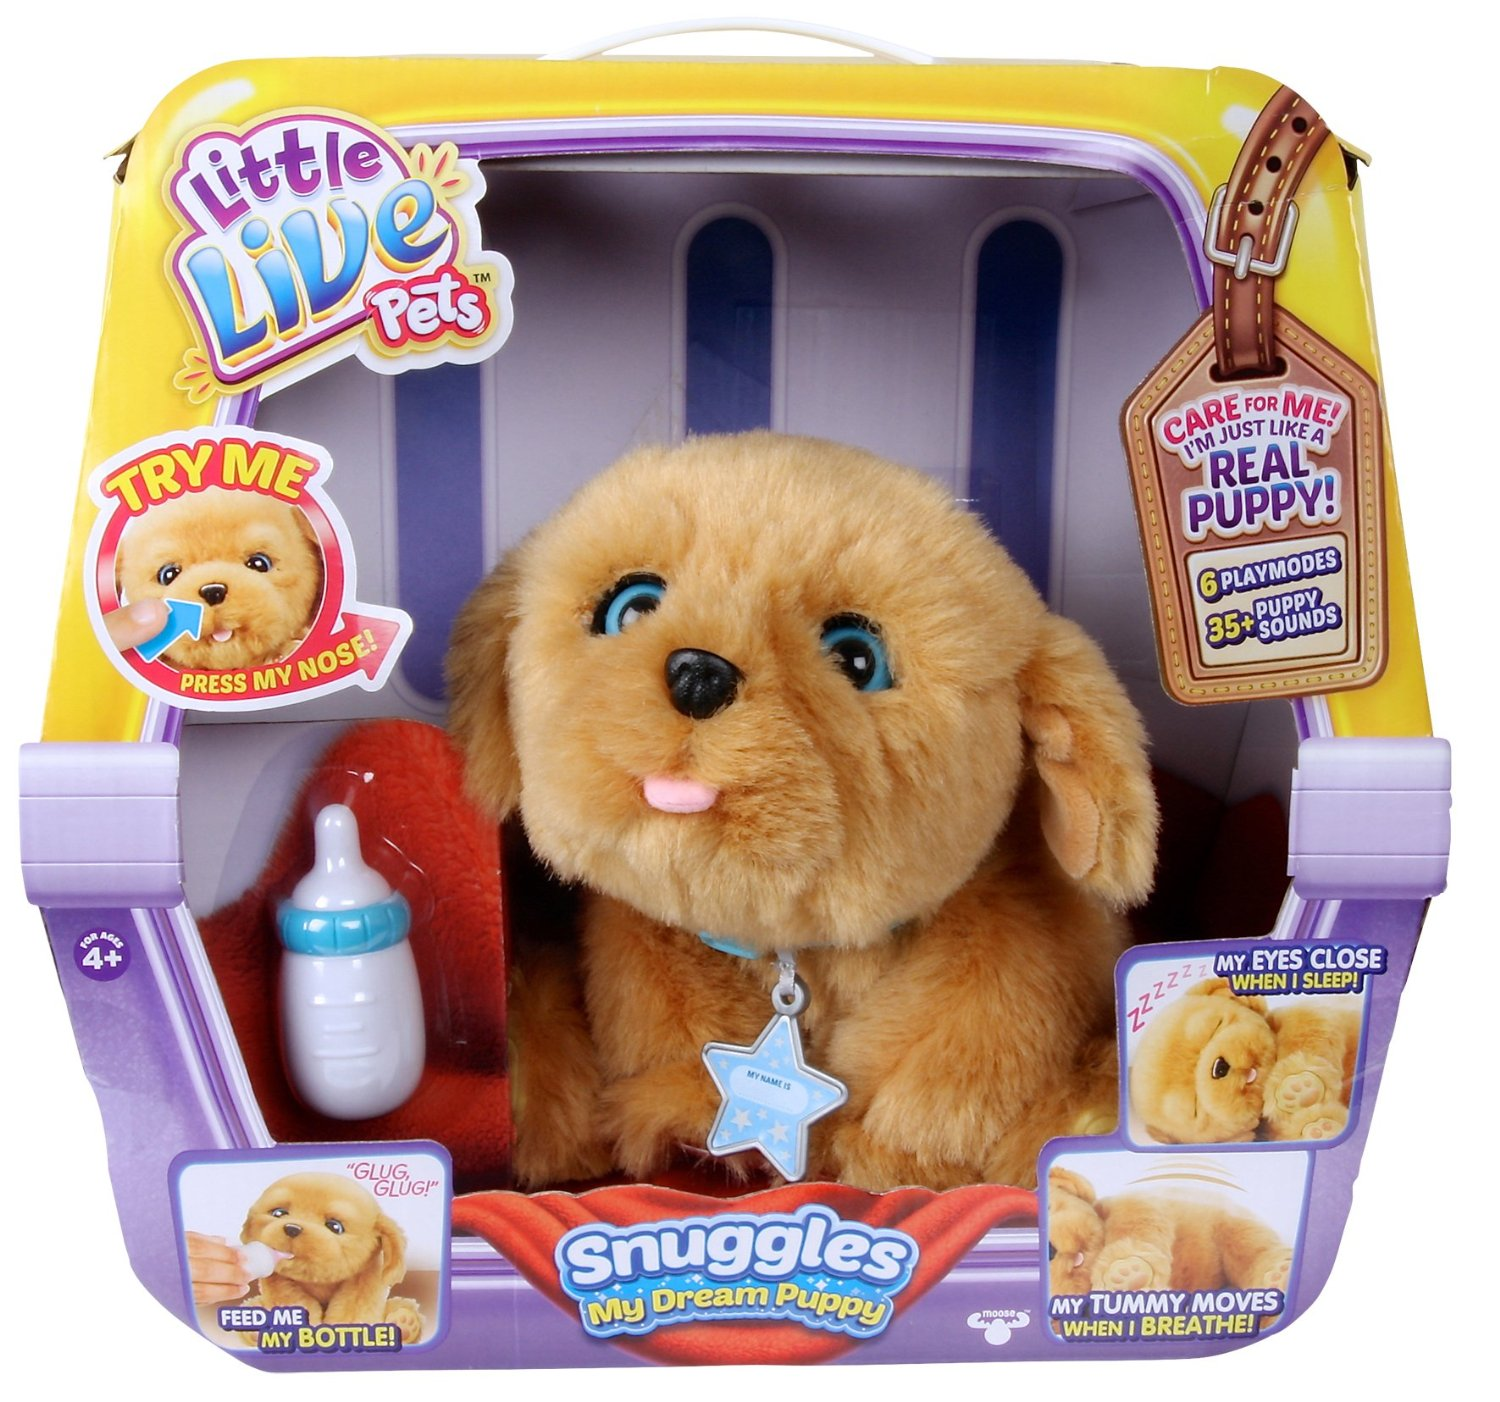 Toys For Little : Hot christmas list toy little live pets snuggles my dream